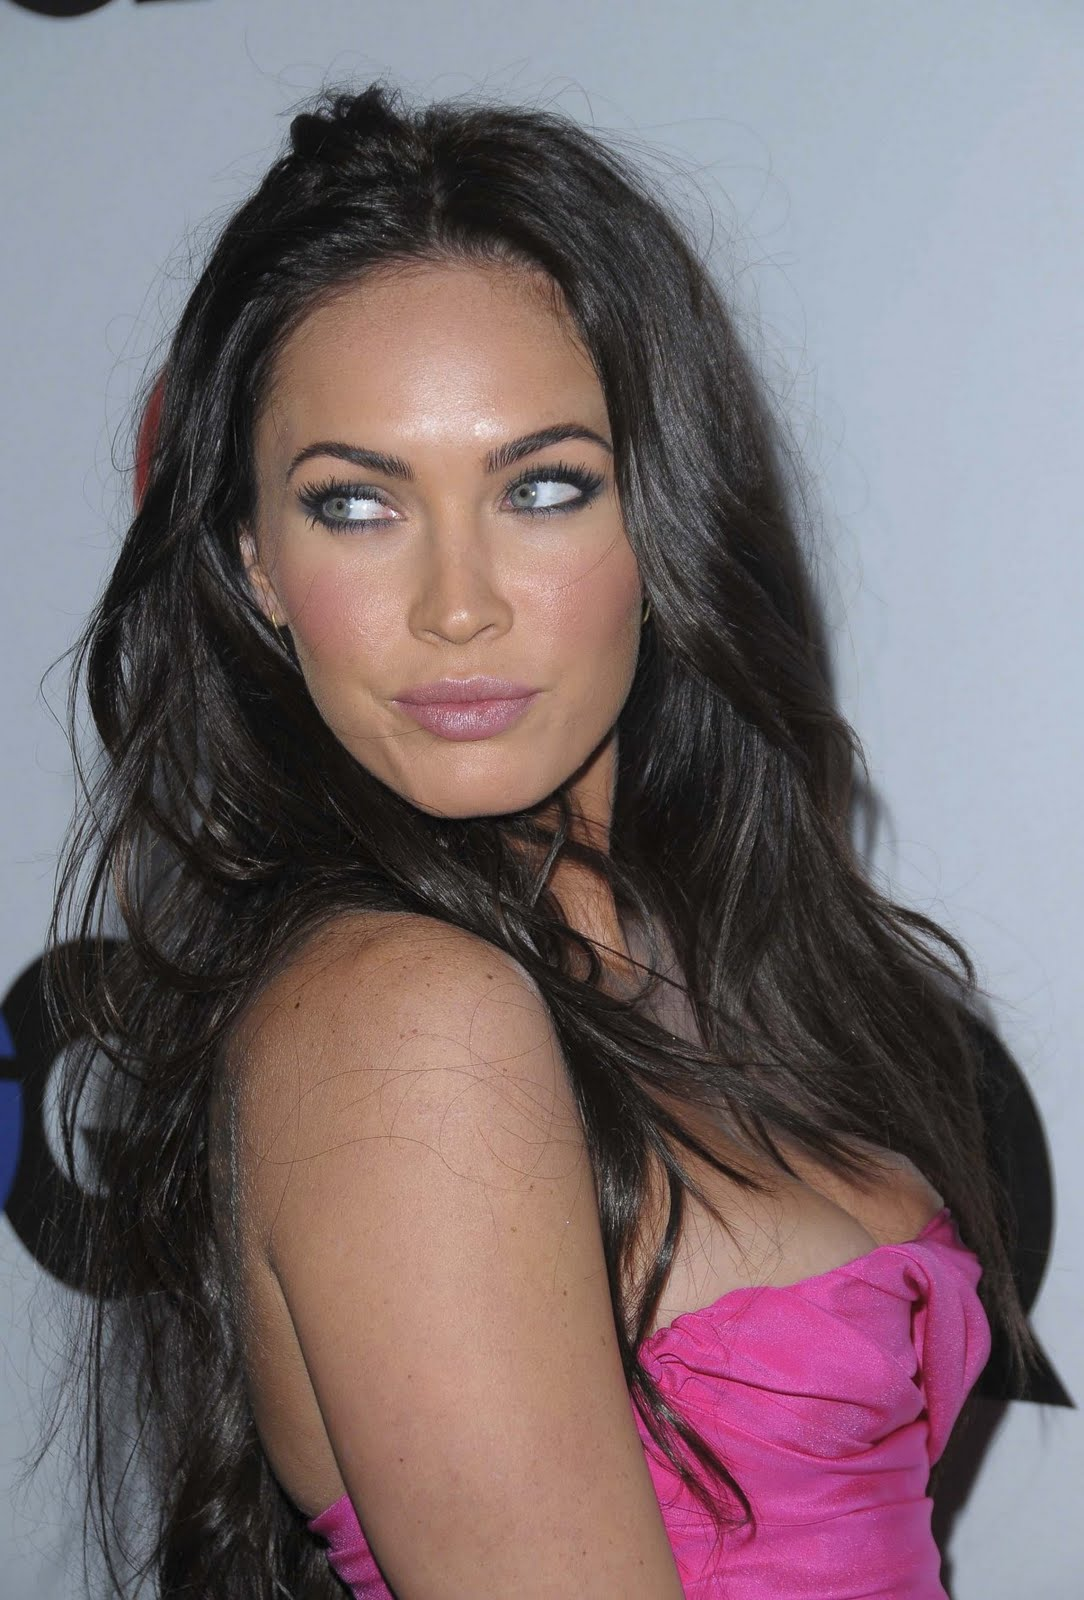 we provide all free here: Megan Fox Hot + Topless